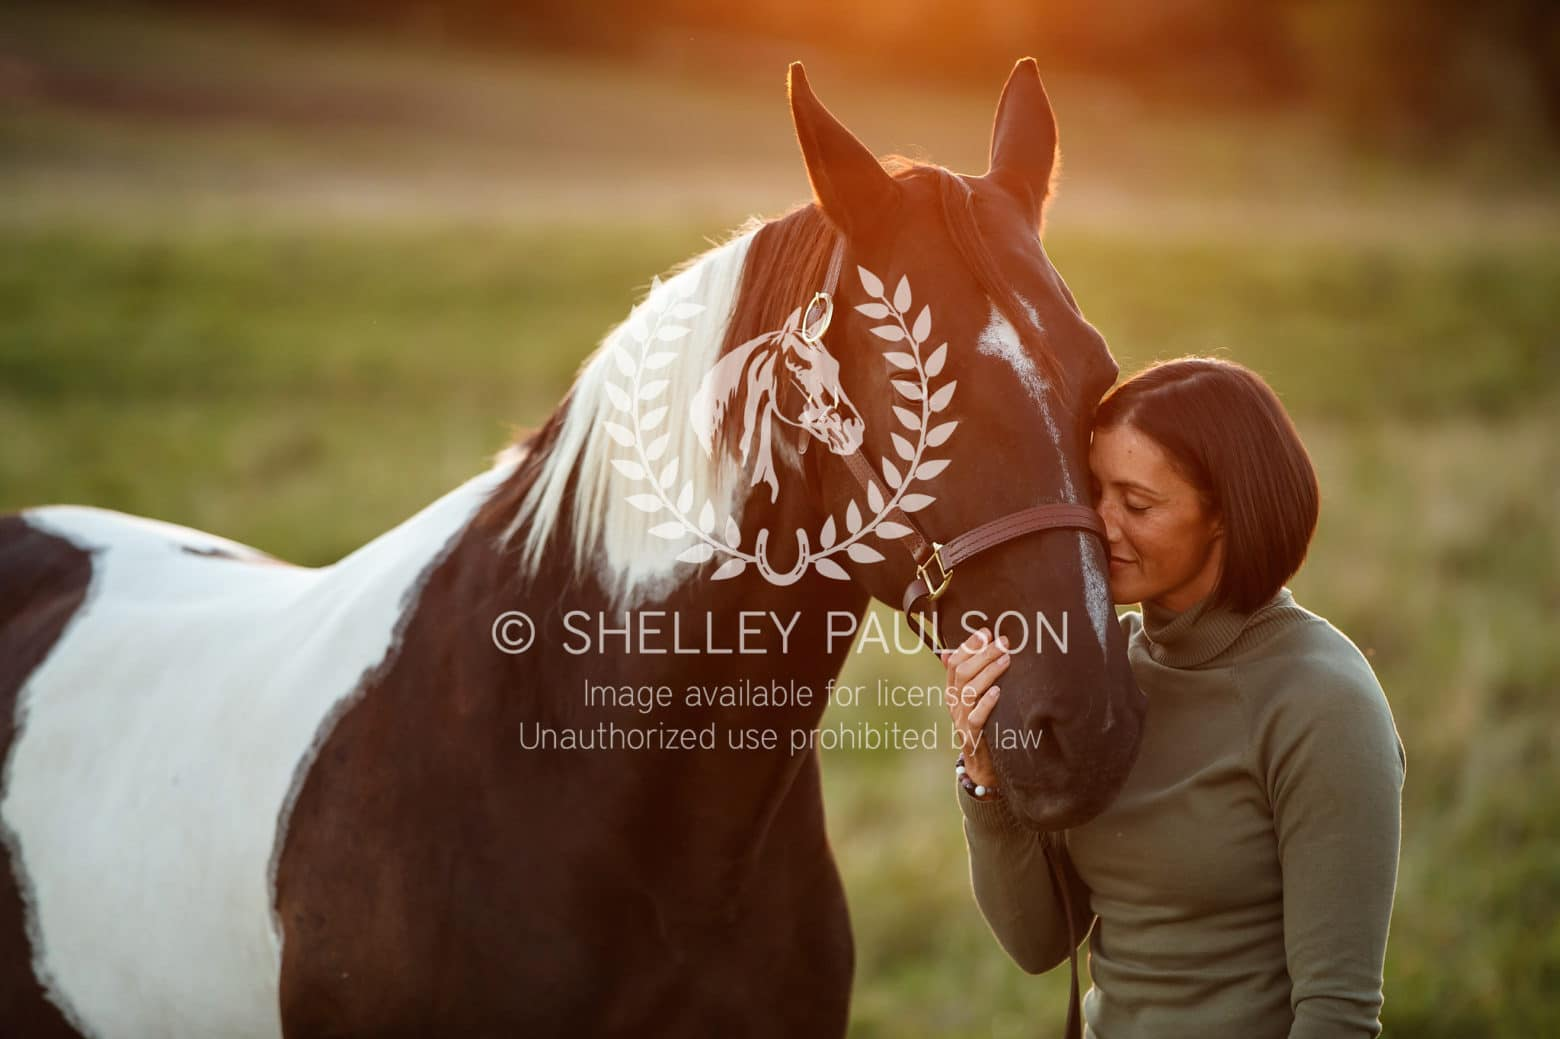 A woman nuzzles her horse